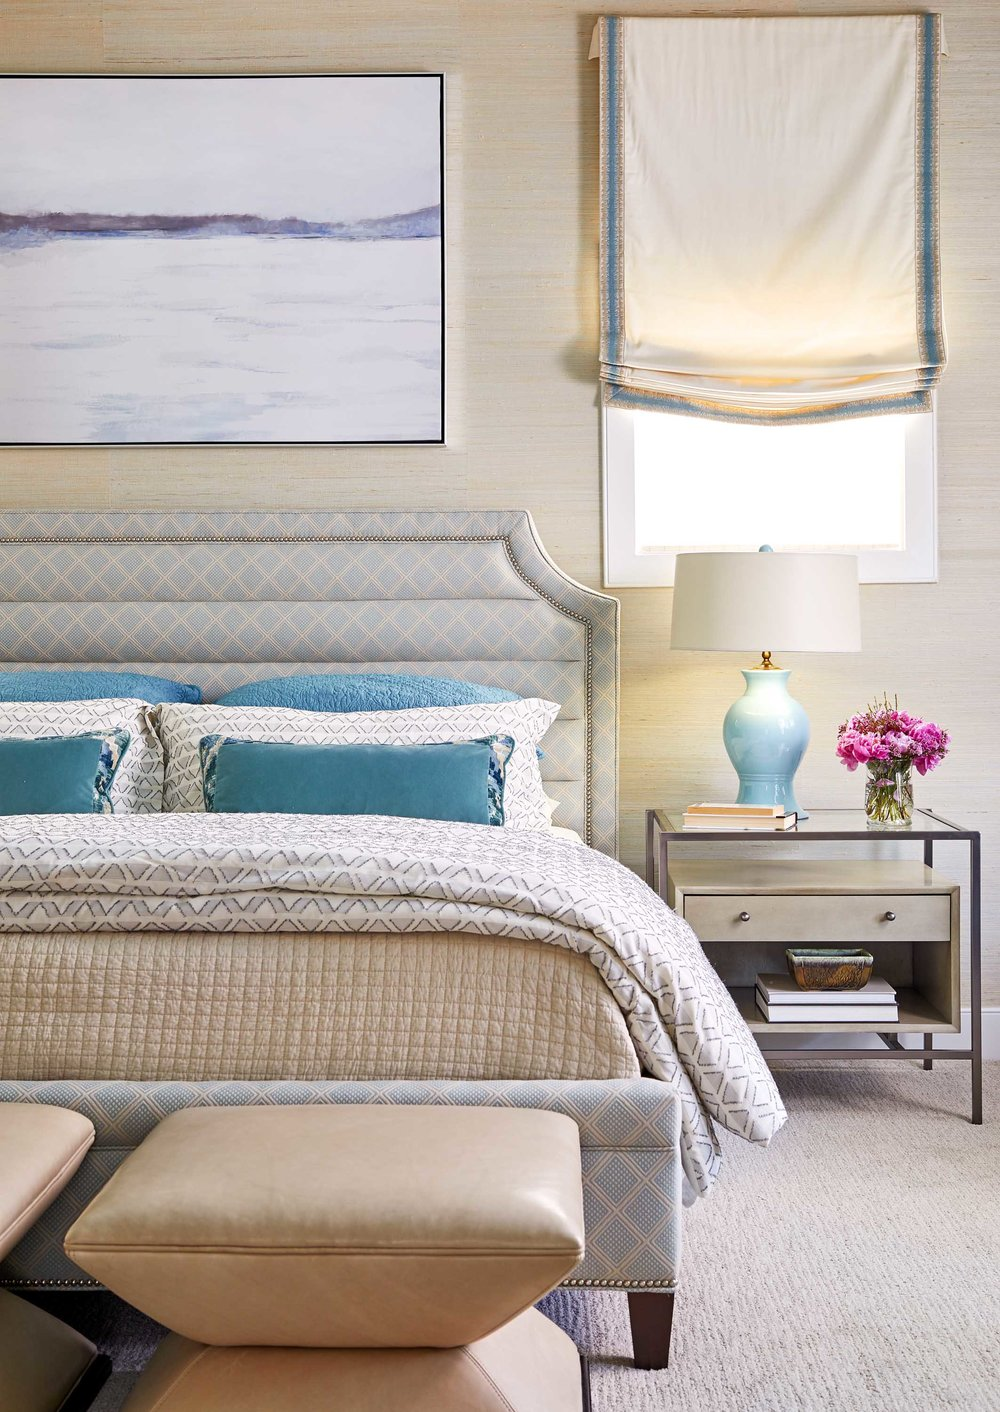 Luxurious bedroom with blue pillows and bedside lamp